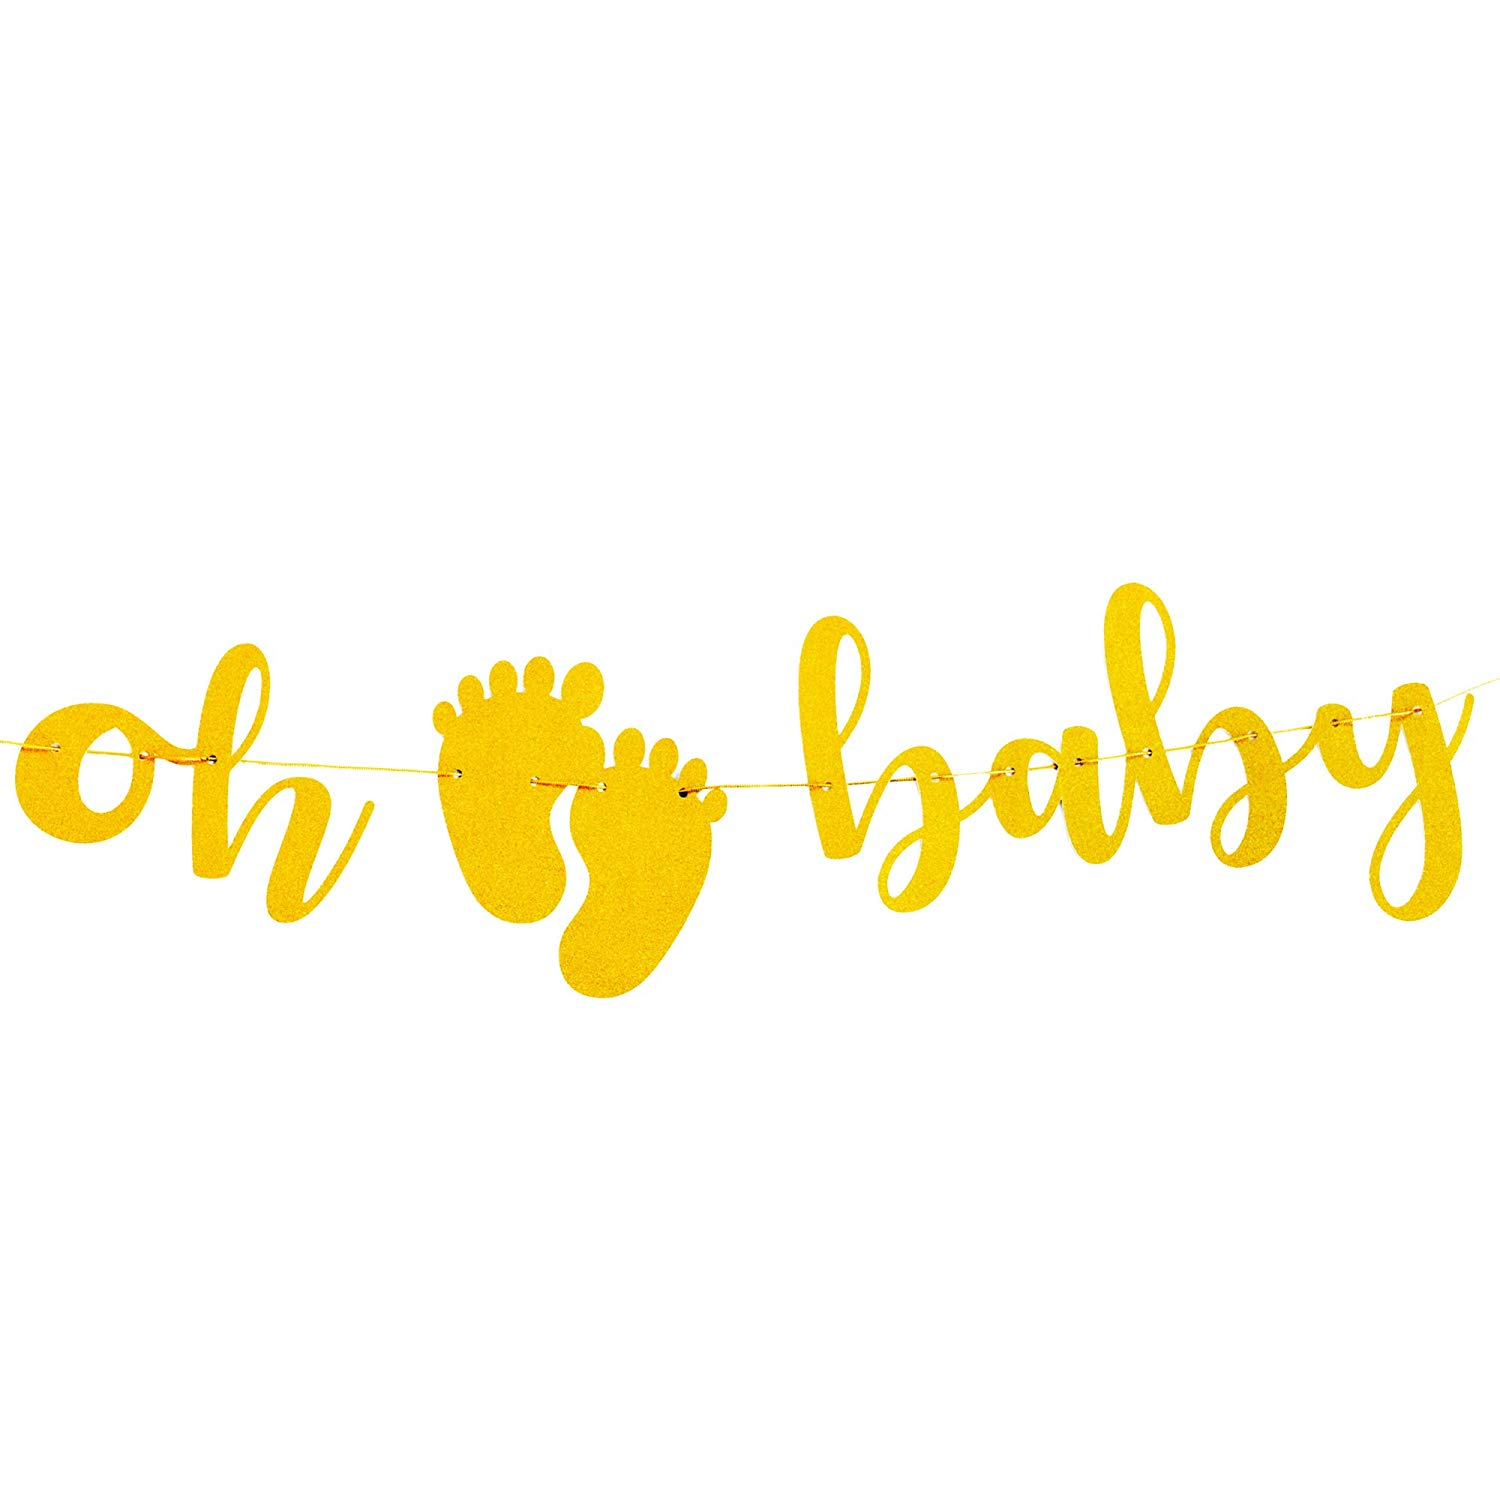 Oh Baby Gold Glitter Banner, Baby Girl/Boy Shower Décor StrungBanner | Baby Shower Party Decorations Backdrop | Gender Reveal Party Decor with Ribbon Kit Set